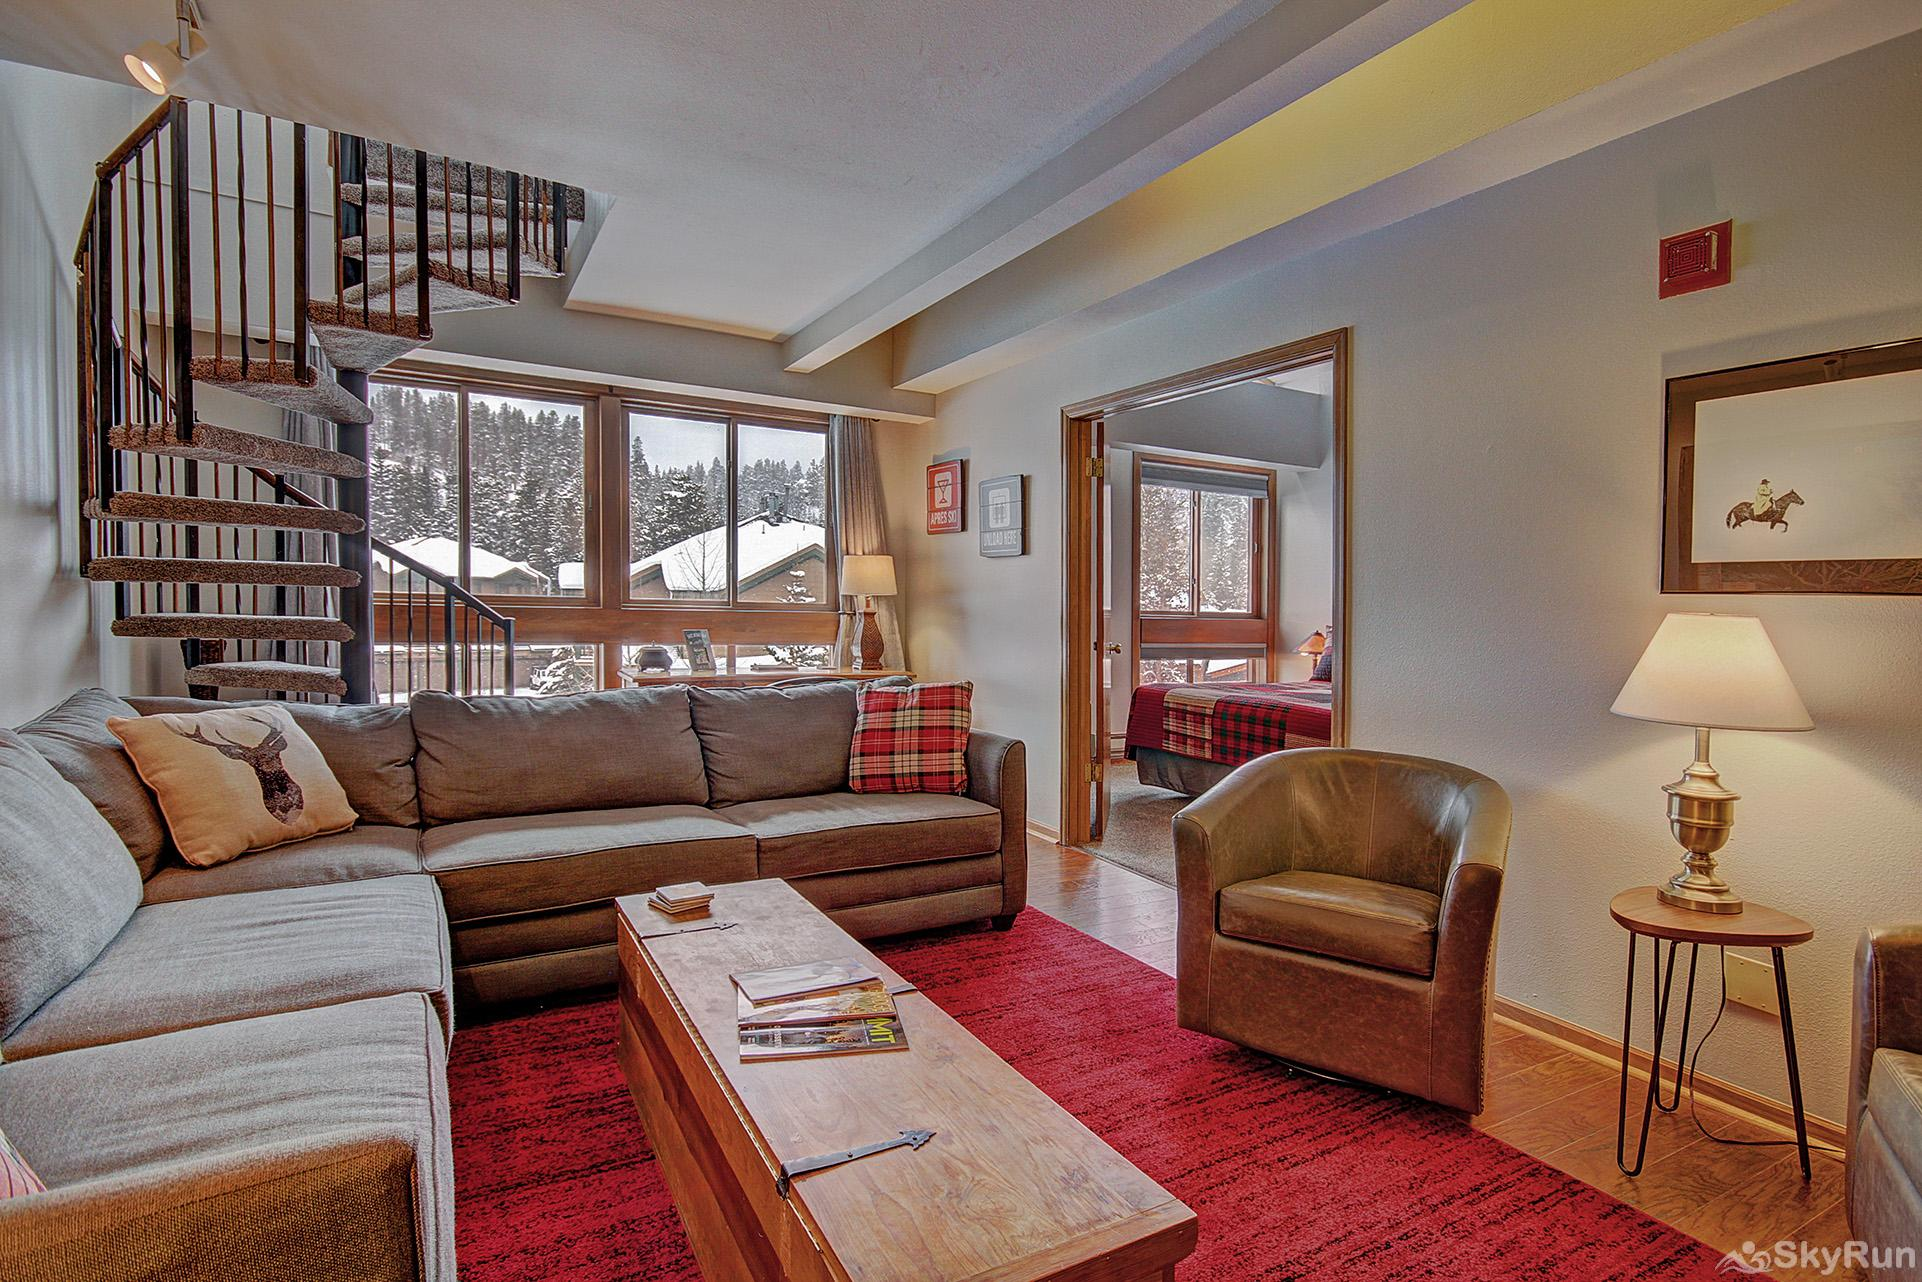 Ski Hill 22 Living area with spiral staircase to upper level